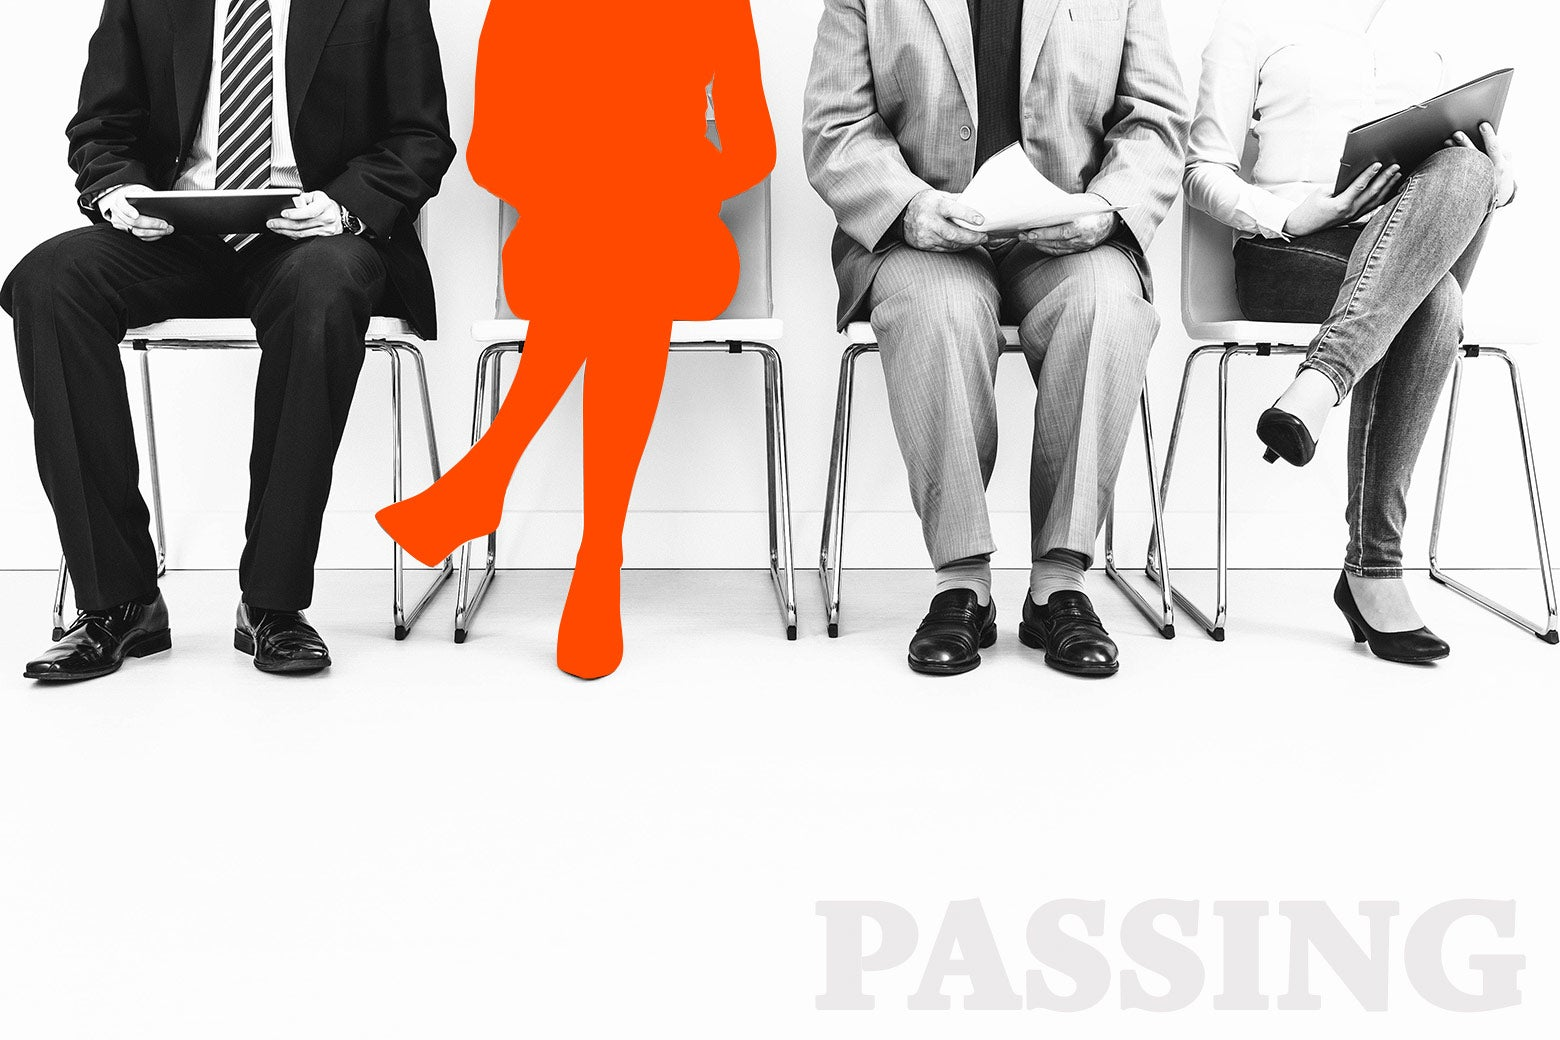 People waiting for a job interview, with one woman silhouetted out in orange.